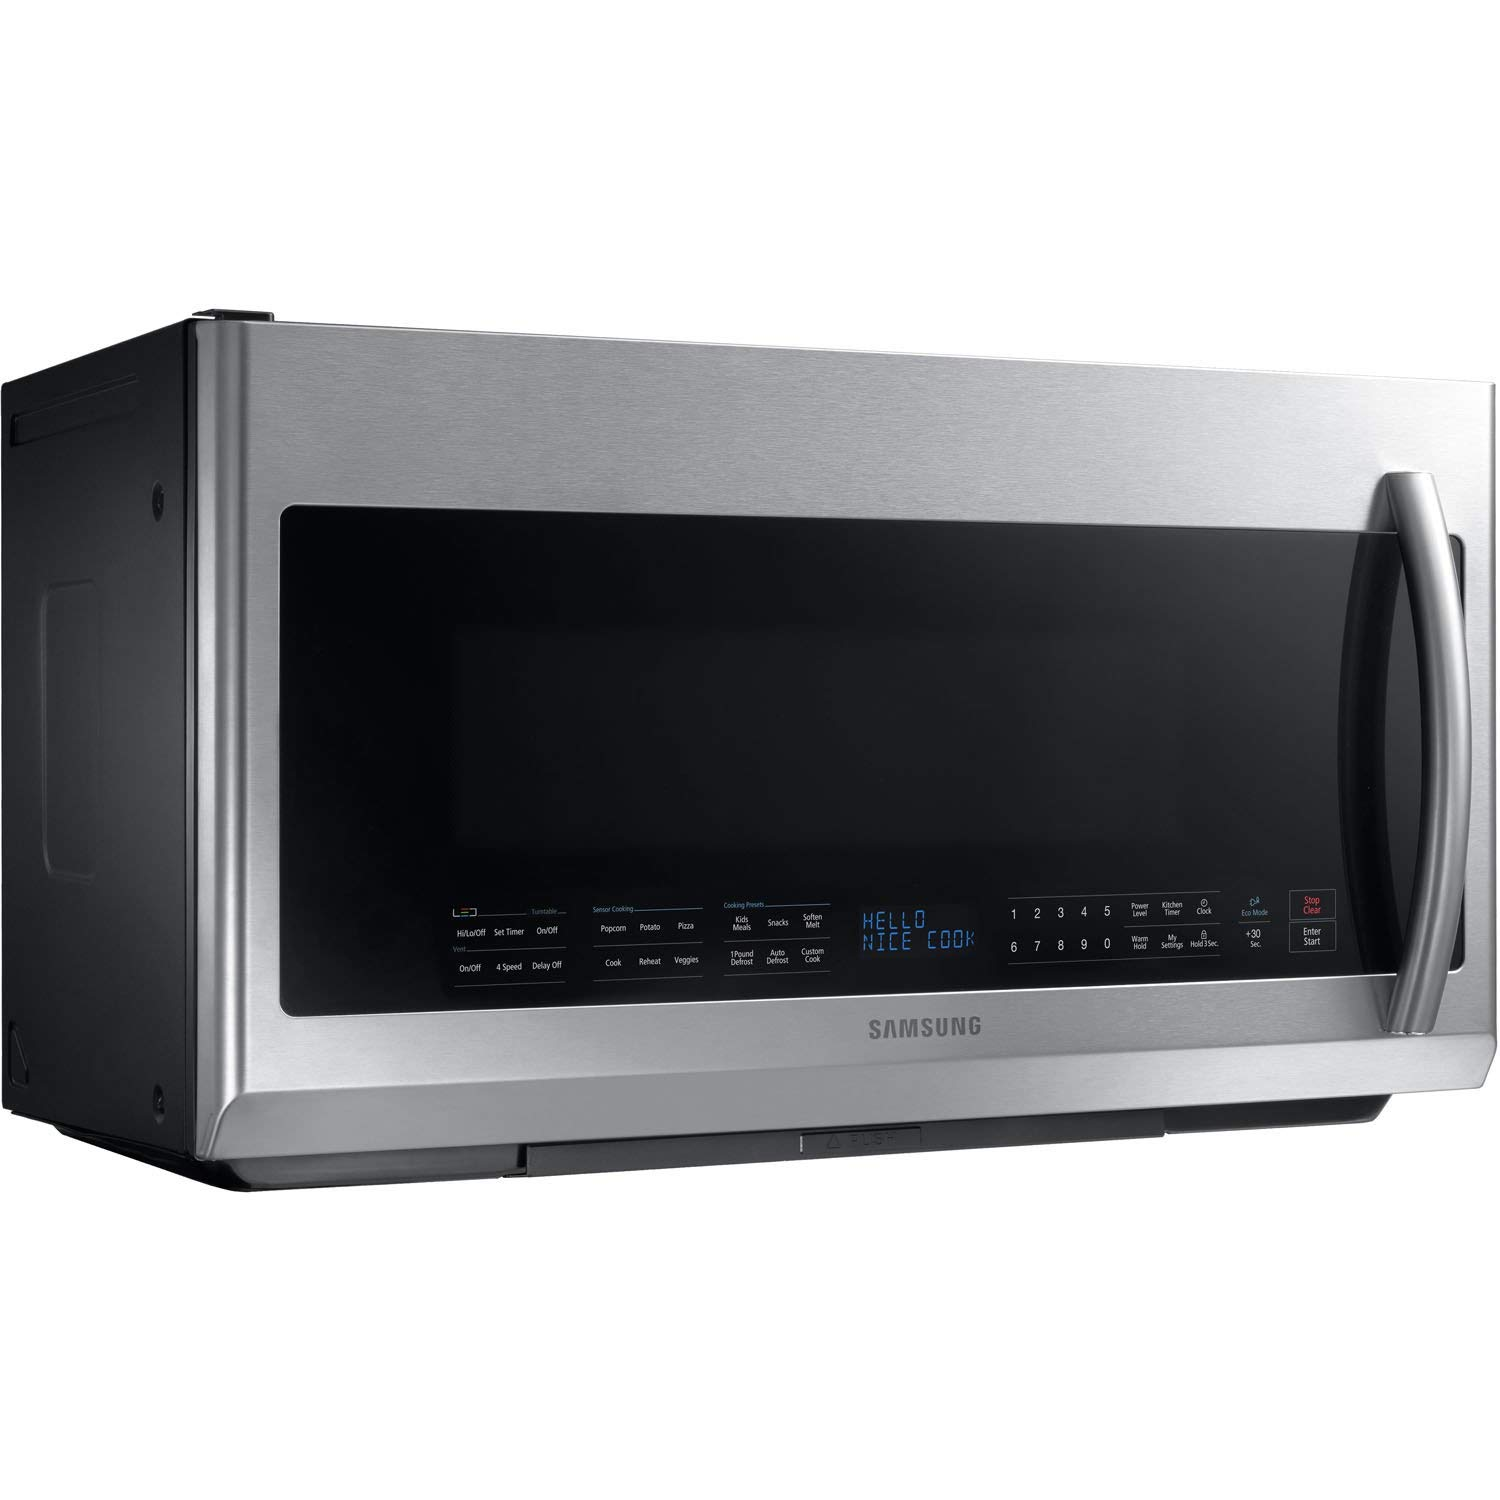 Samsung ME21F707MJT Over-The-Range Microwave